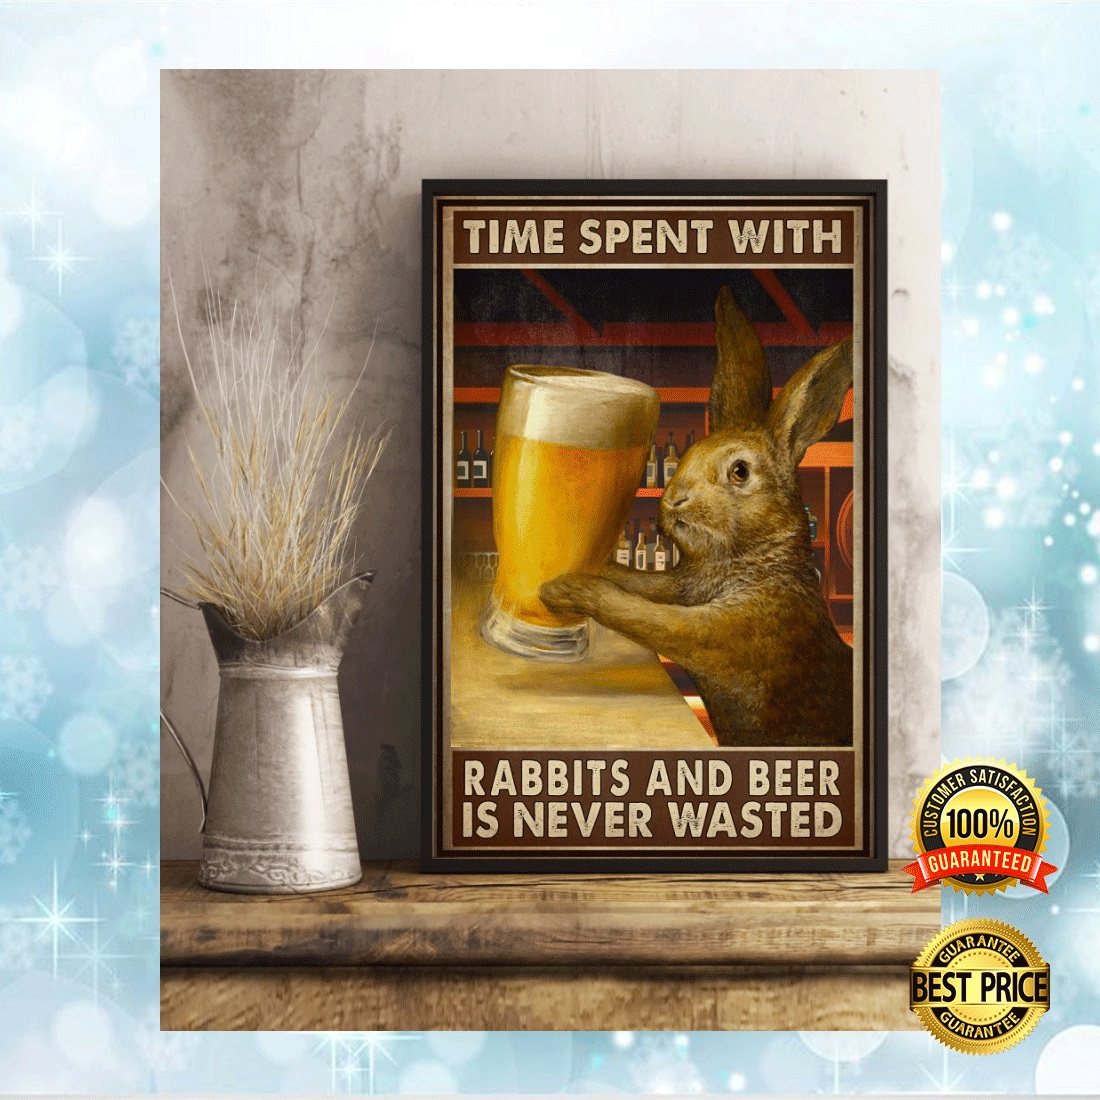 TIME SPENT WITH RABBITS AND BEER IS NEVER WASTED POSTER 7